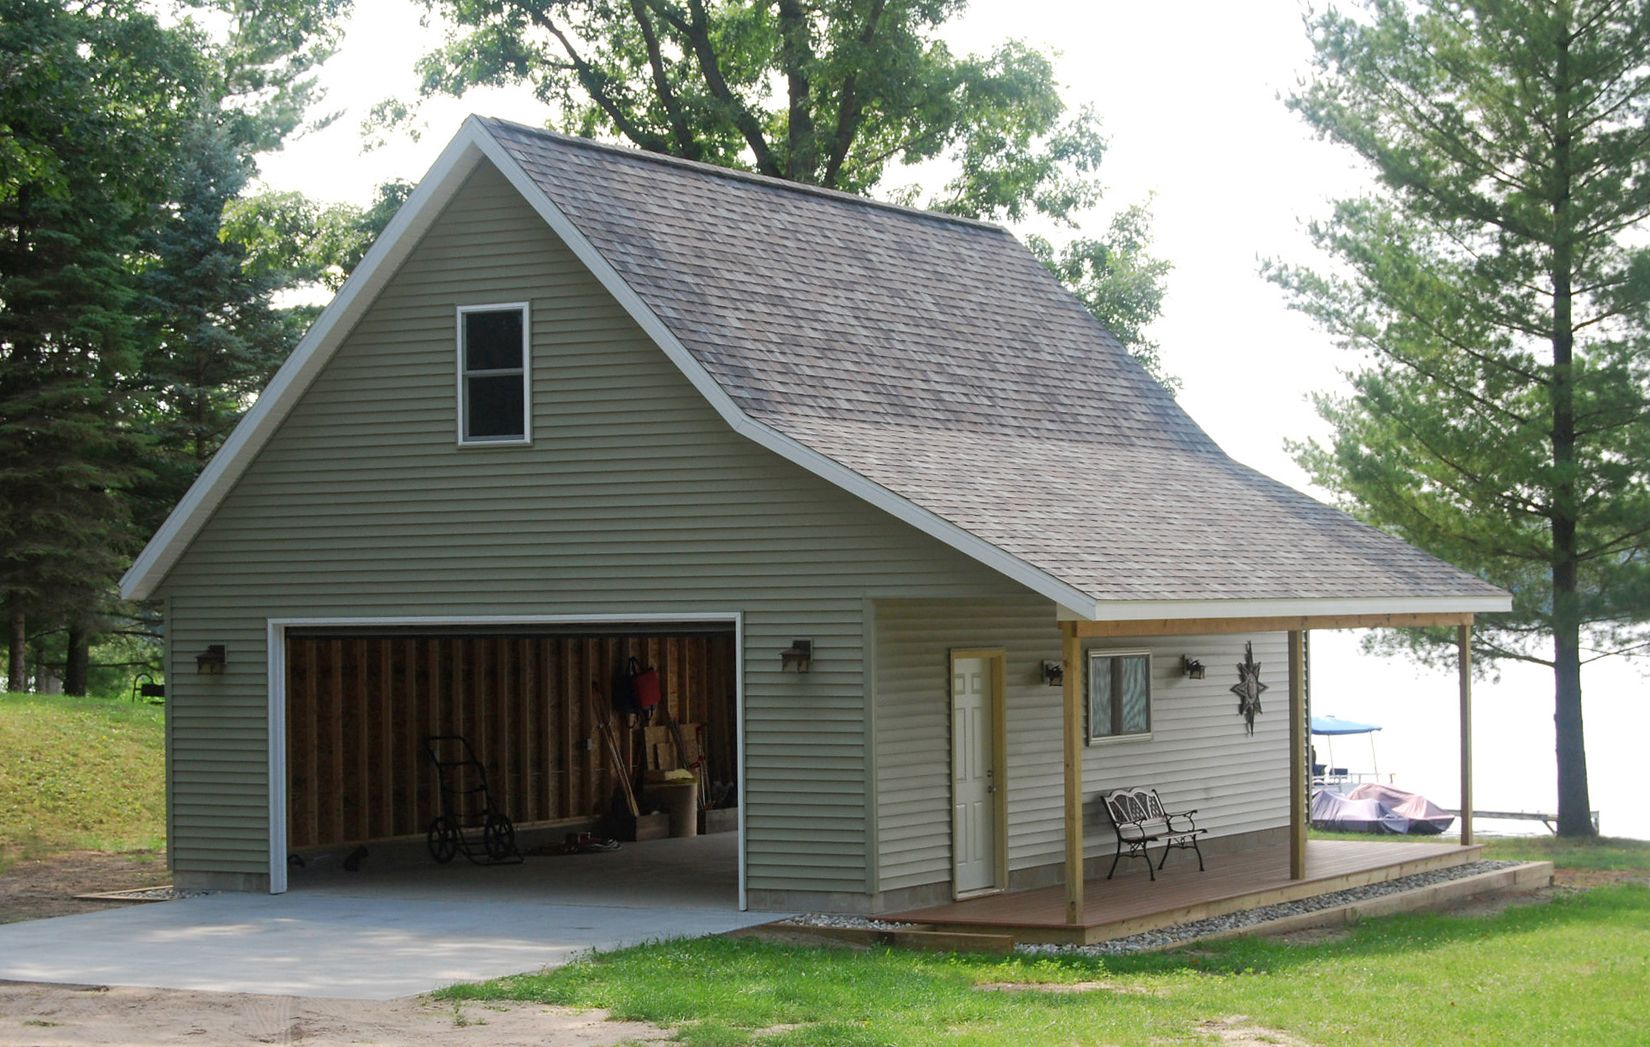 Pole barn garage plans welcome to jb custom homes where for Pole barn home builders